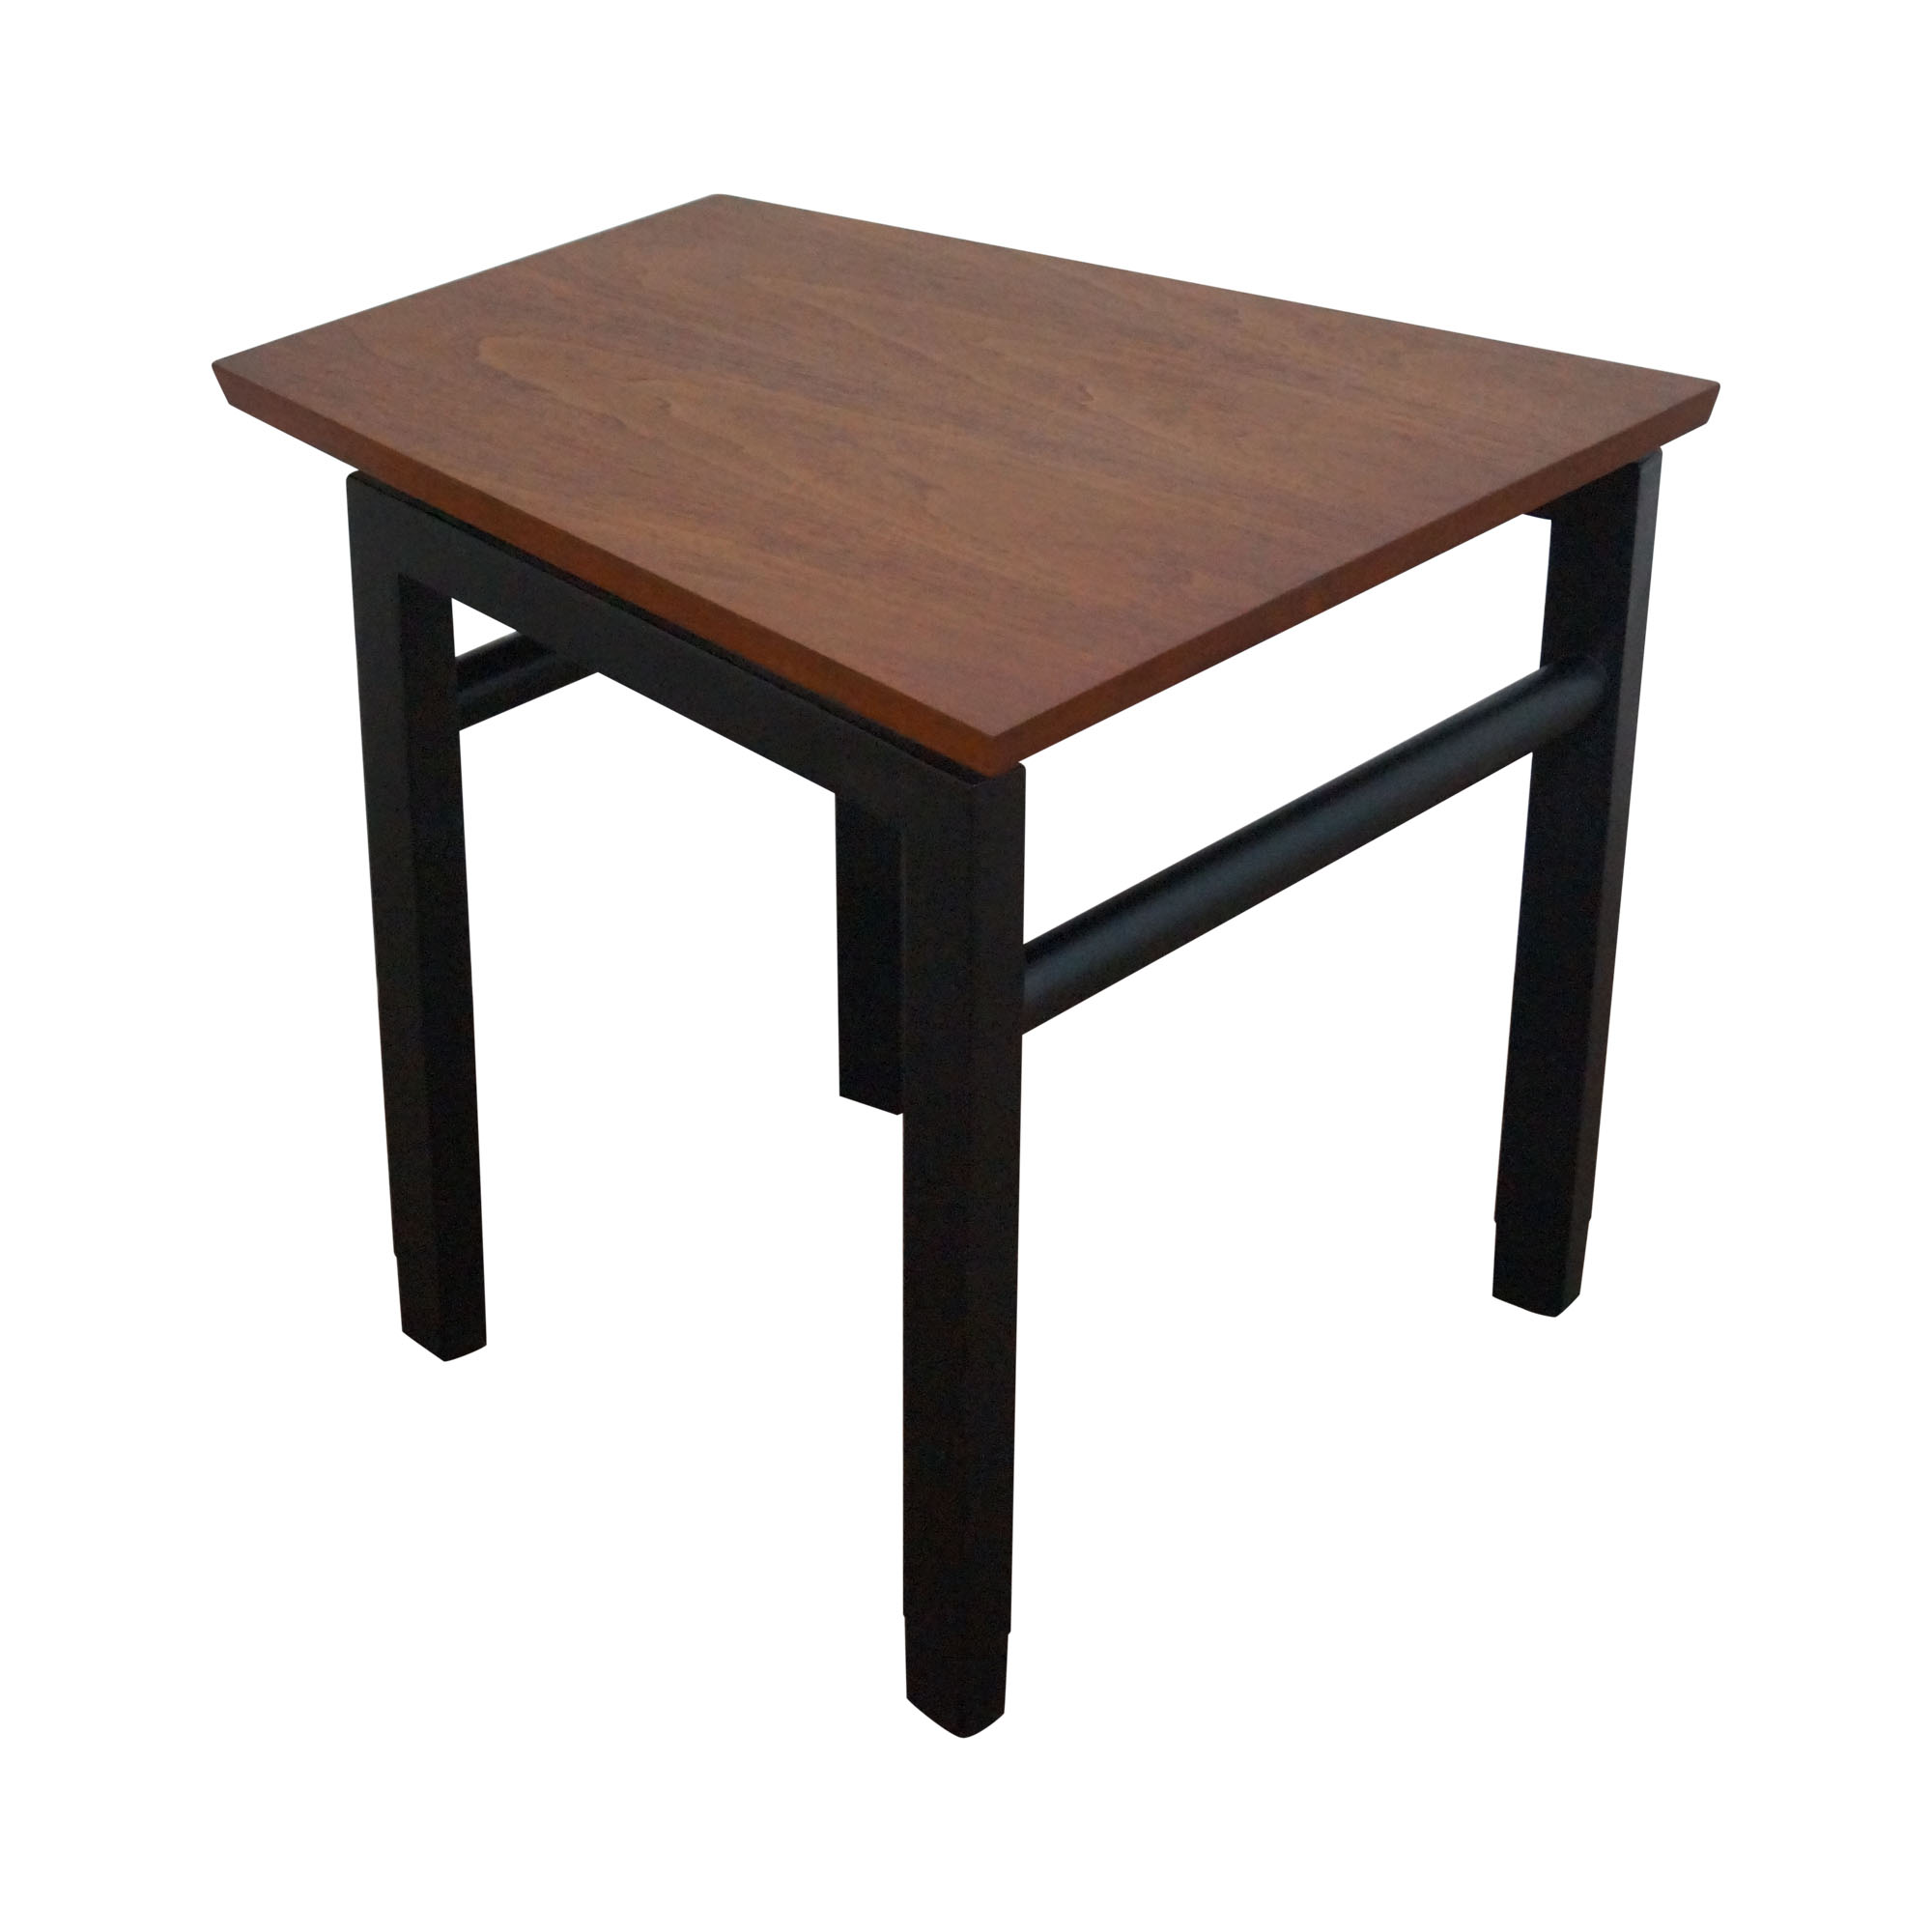 Edward Wormley Dunbar Mid Century Trapezoid Table